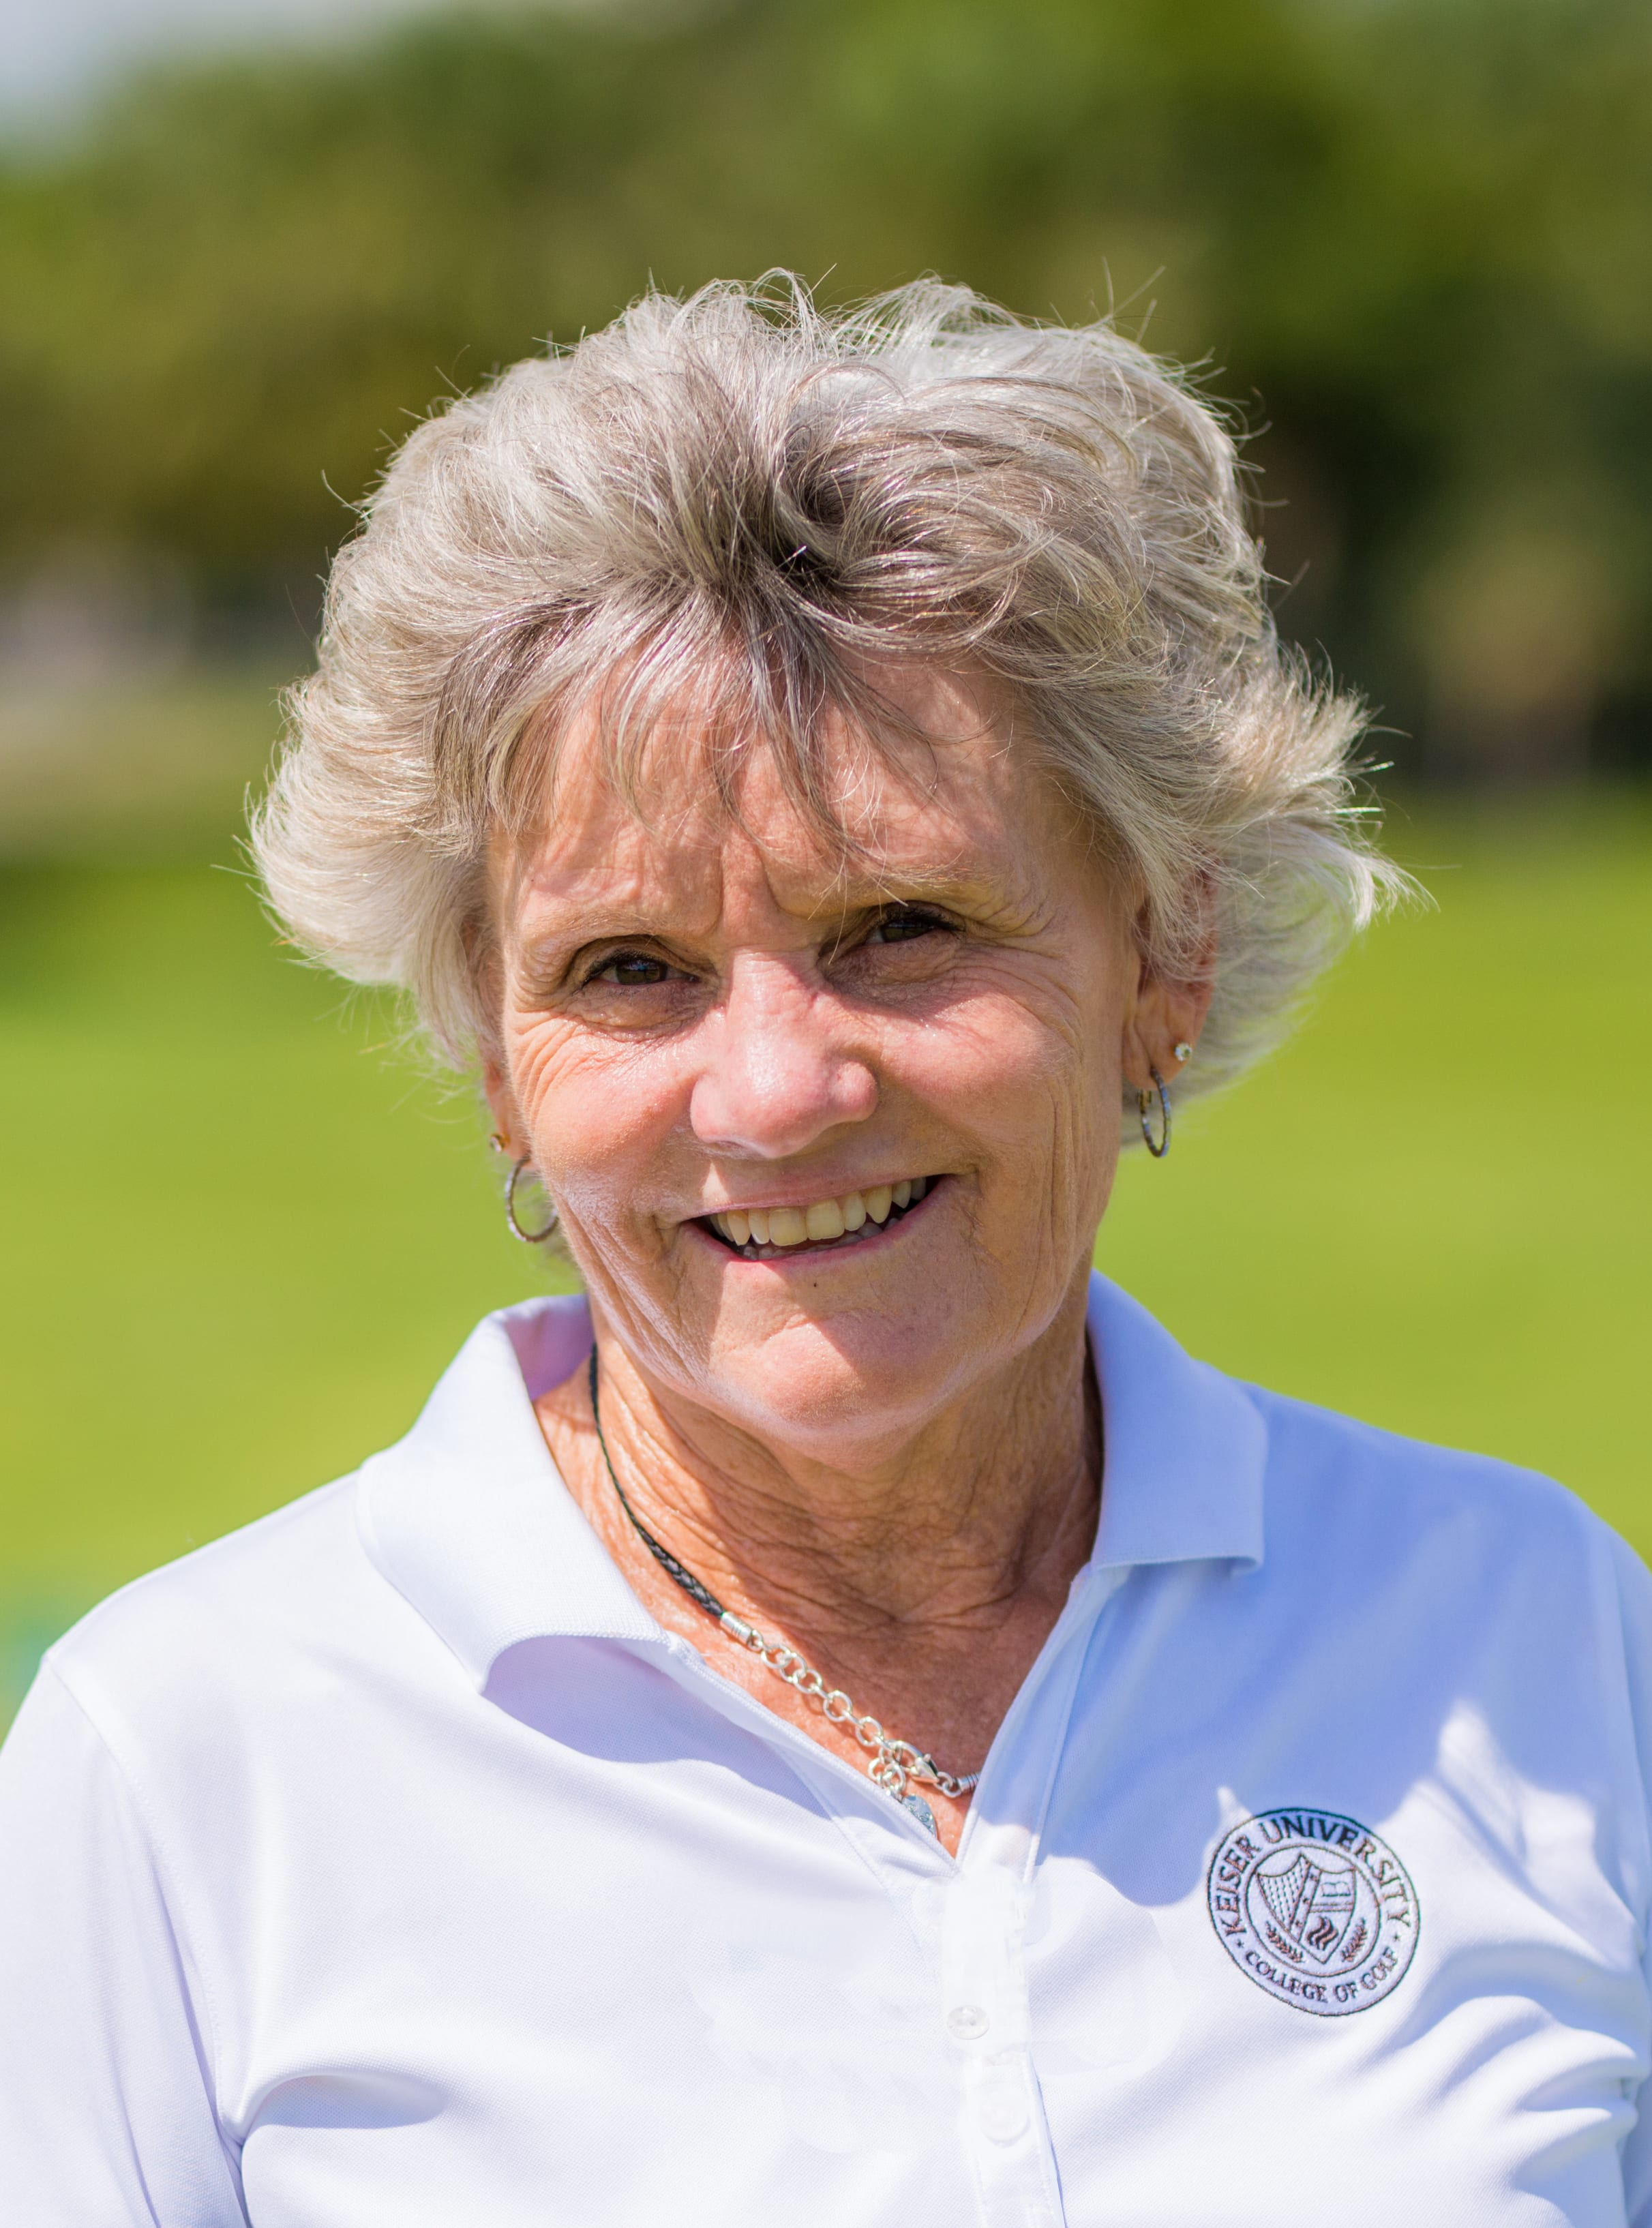 KU College of Golf Instructor Featured in Florida Weekly